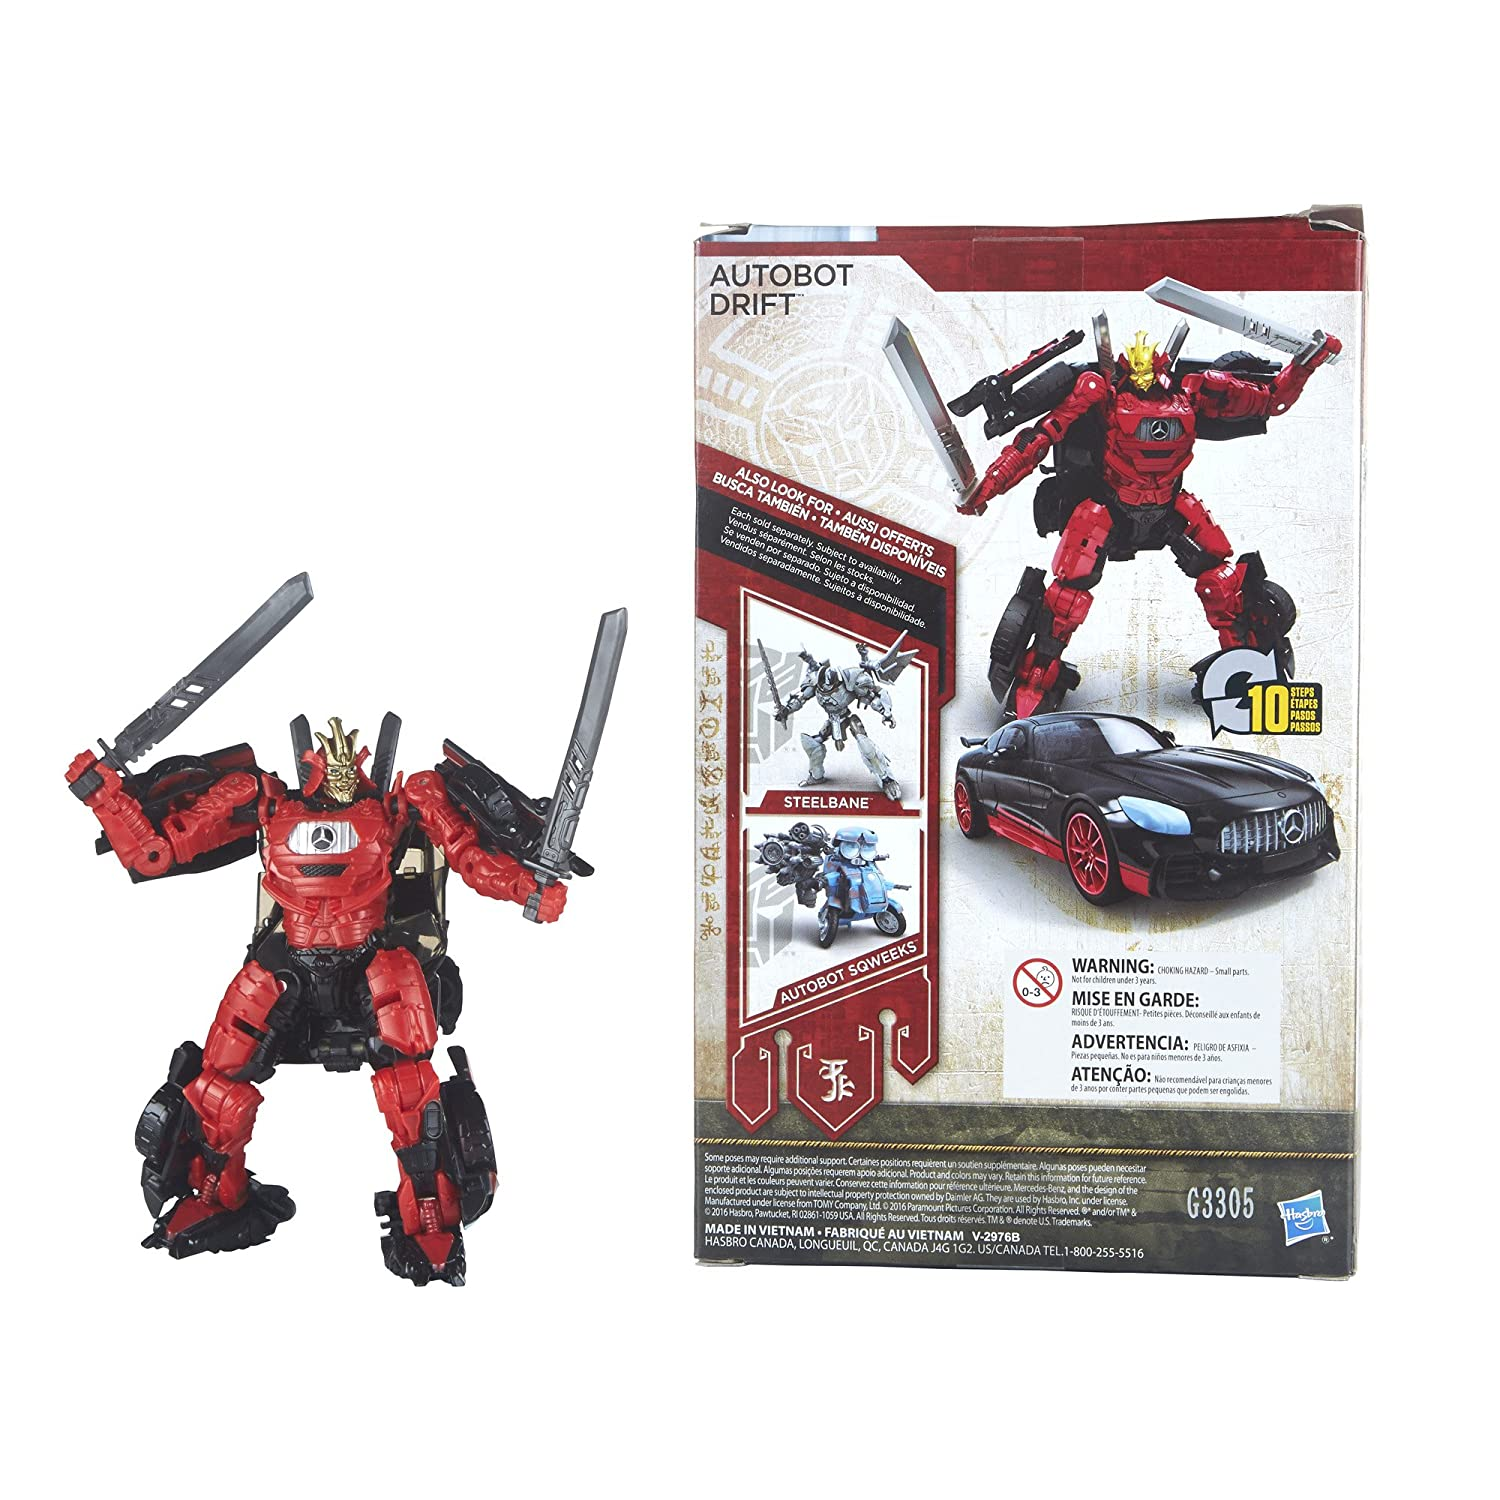 Amazon.com: Transformers - C2400 - Last Knight Premier Edition Deluxe Autobot Drift: Toys & Games